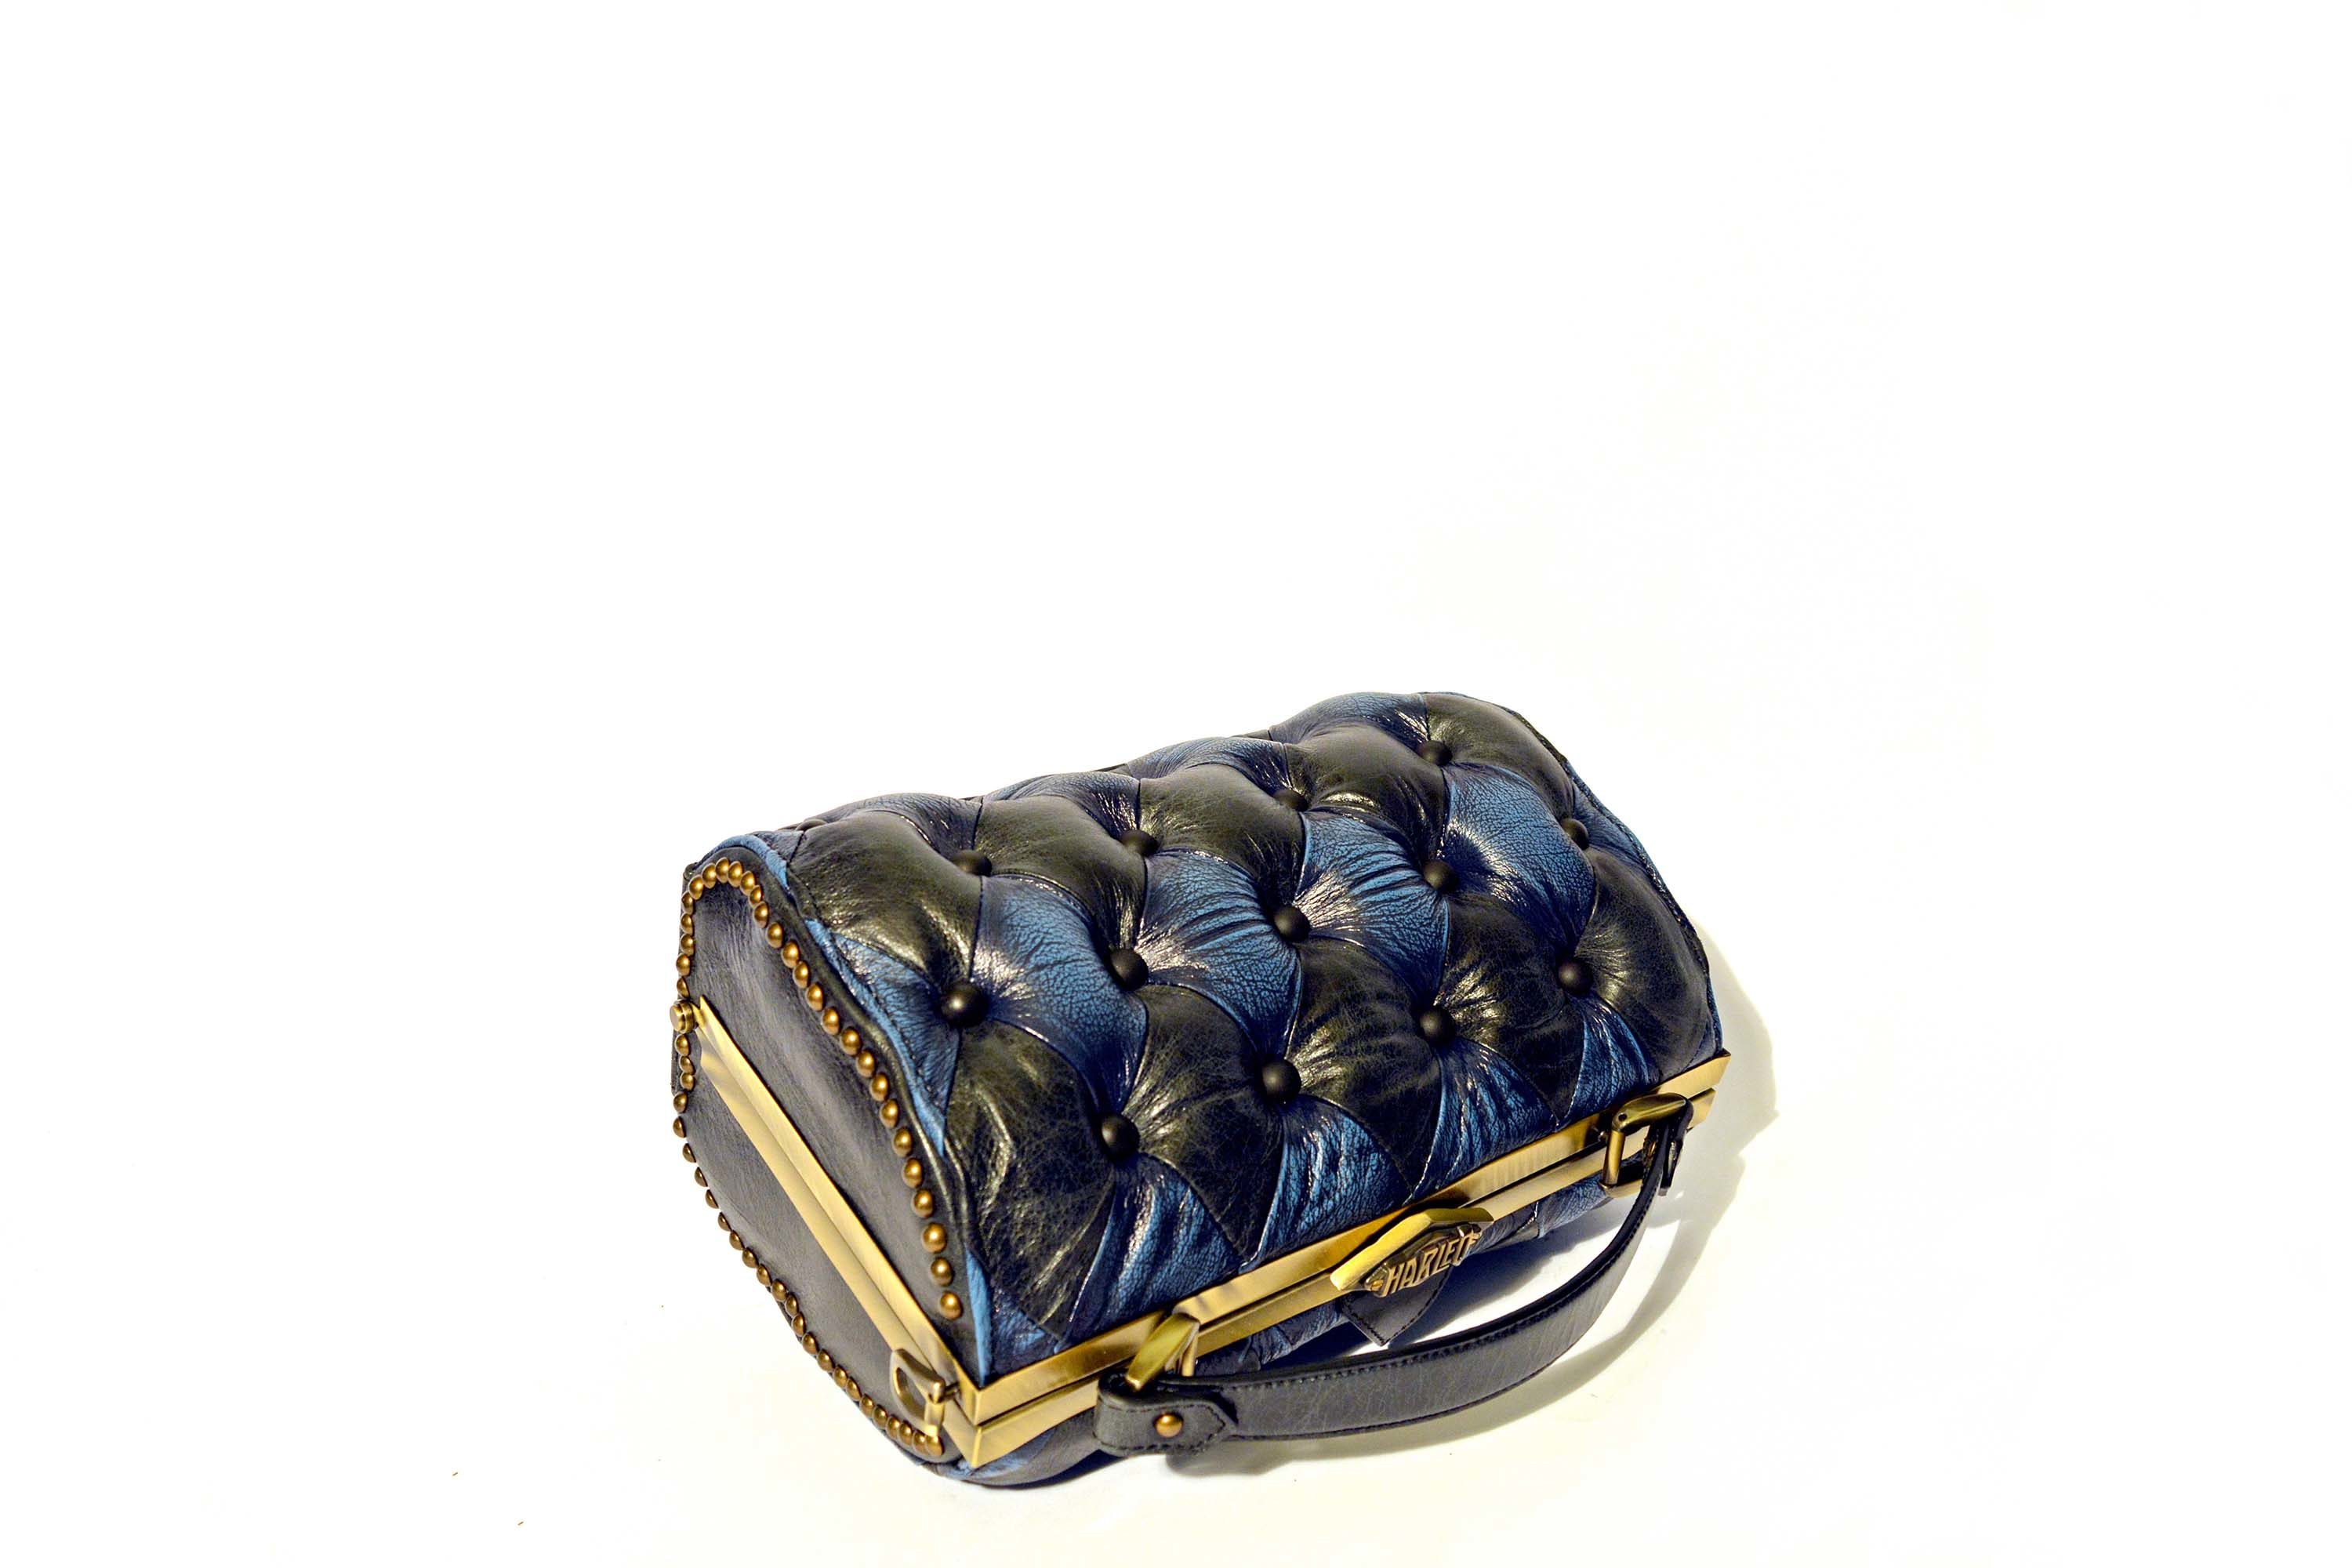 black-blue-leather-handbag